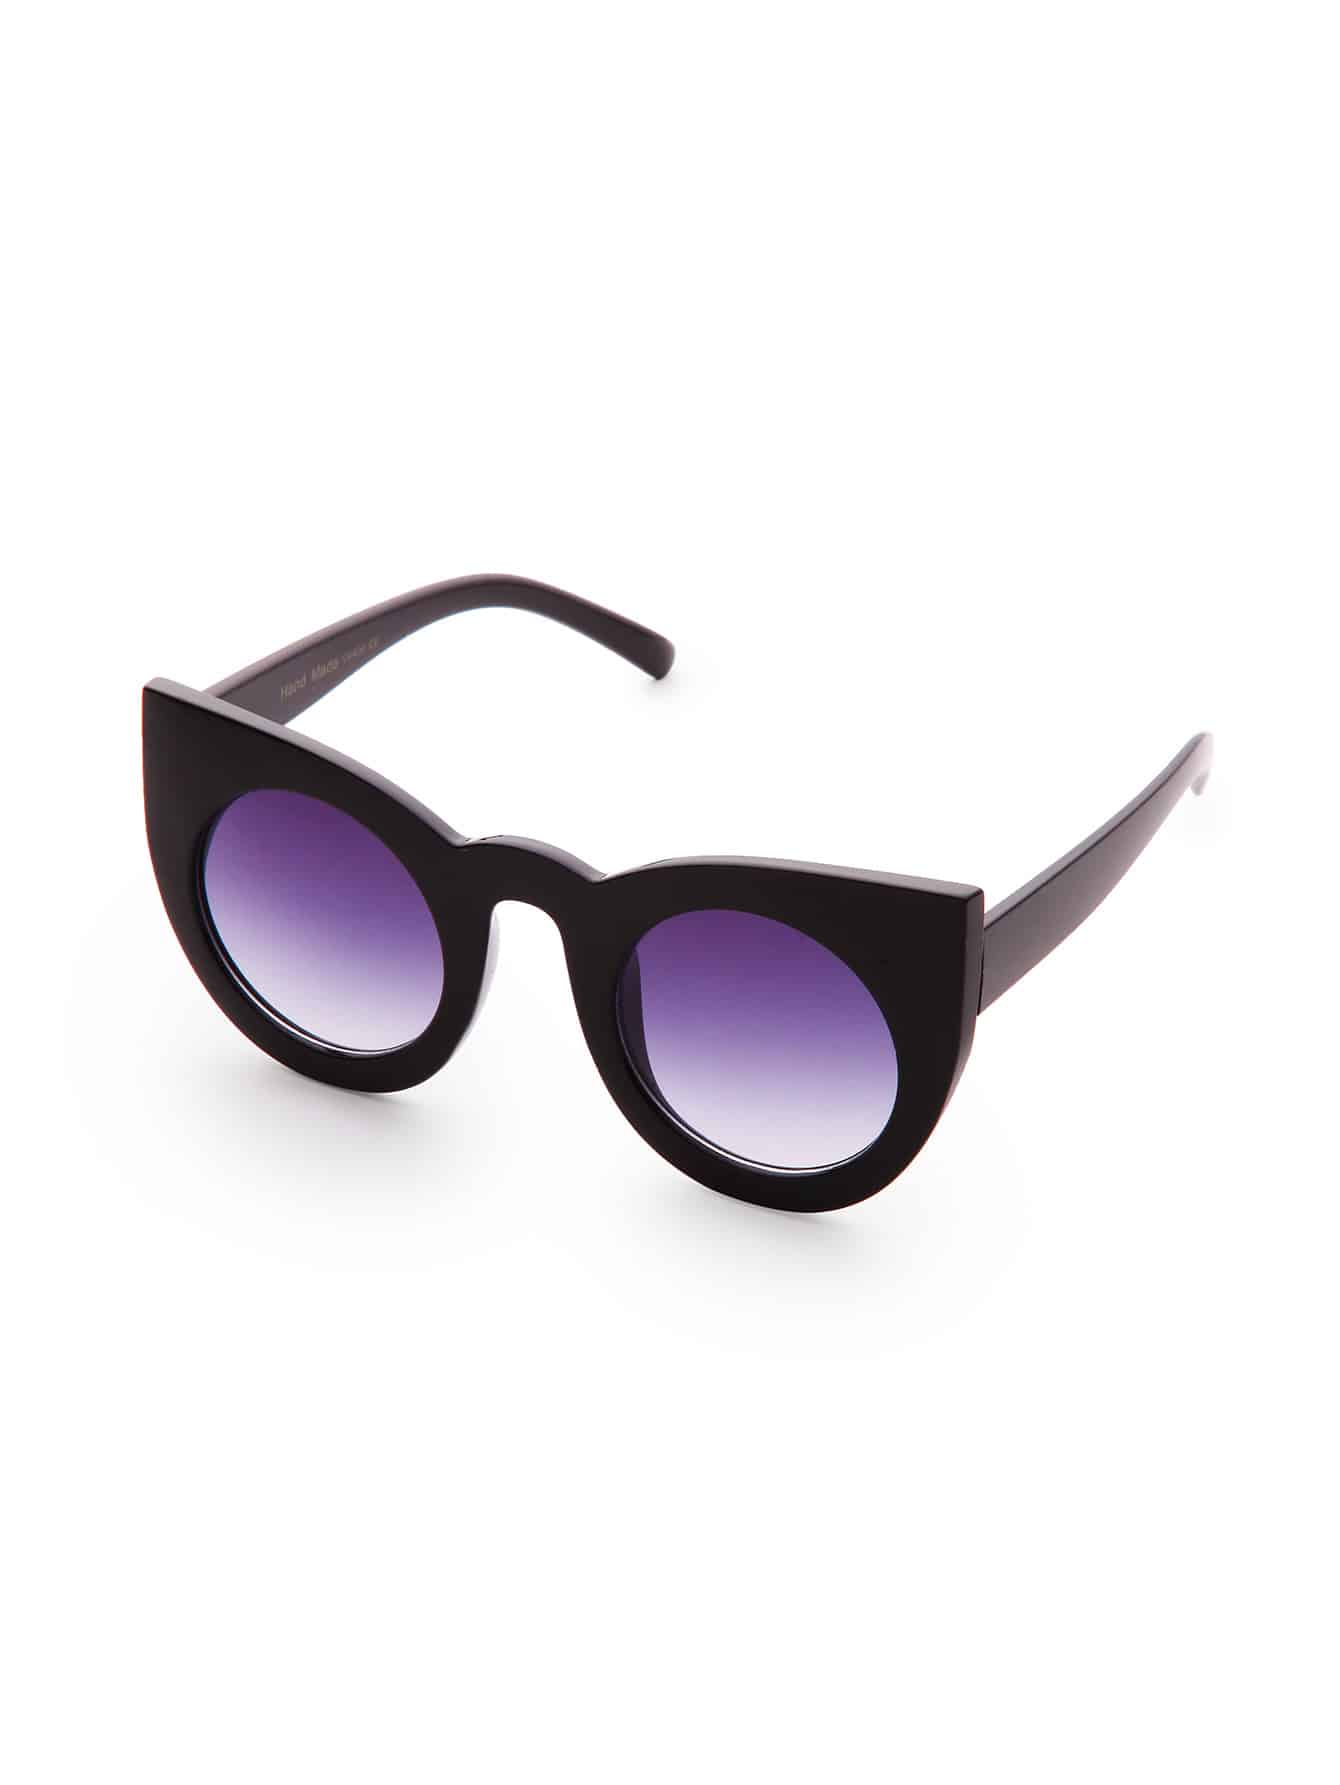 Cat Eye Frame Glasses Philippines : Contrast Frame Cat Eye Sunglasses -SheIn(Sheinside)